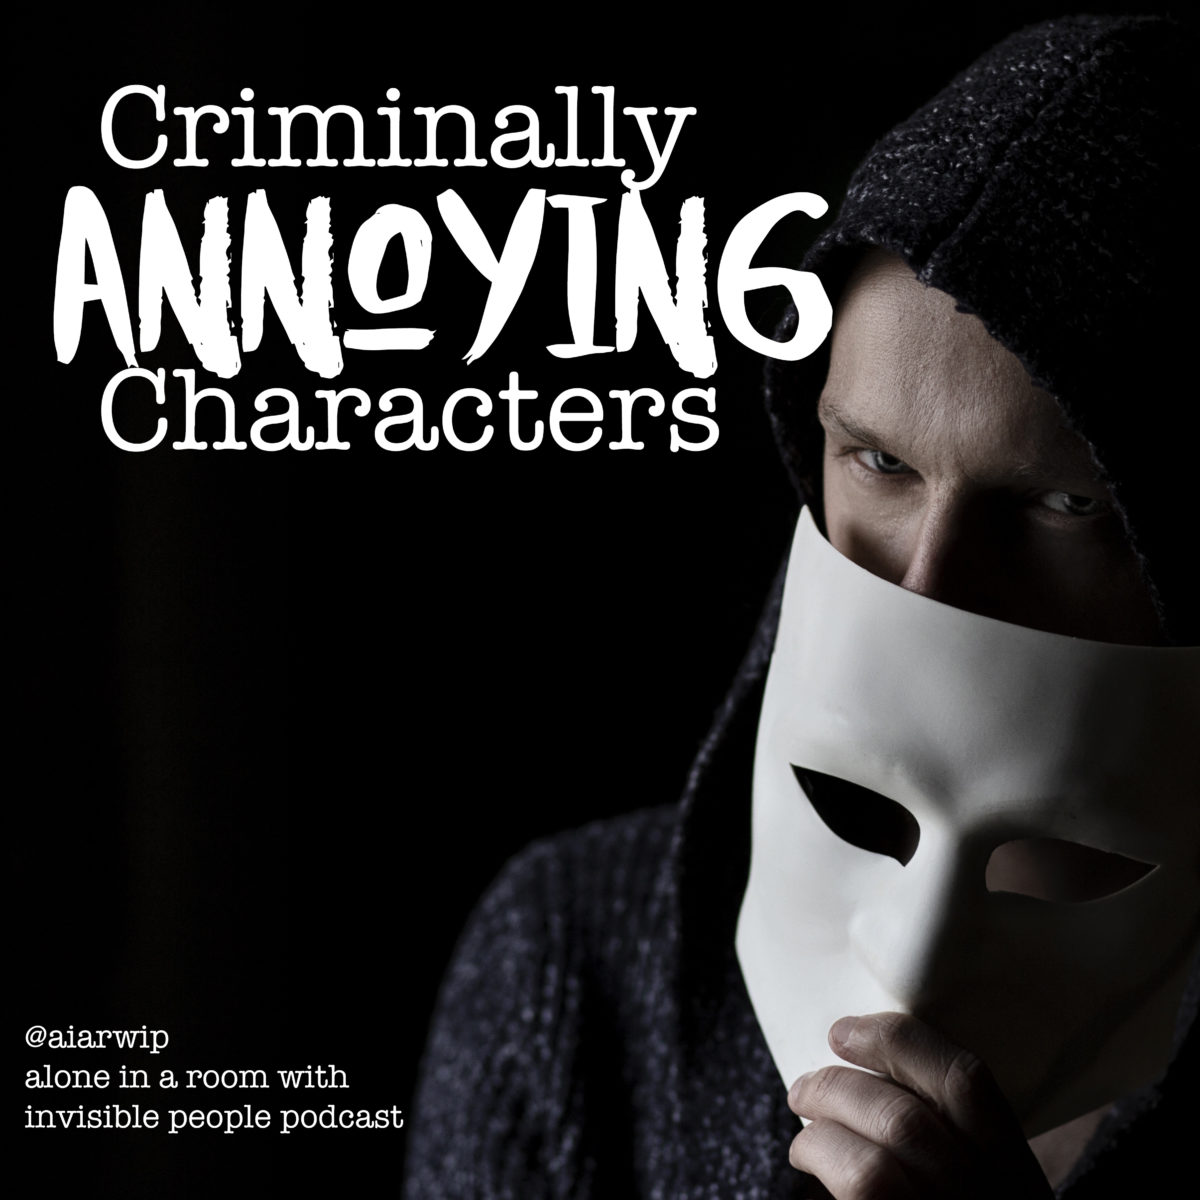 Episode 12: Criminally Annoying Characters